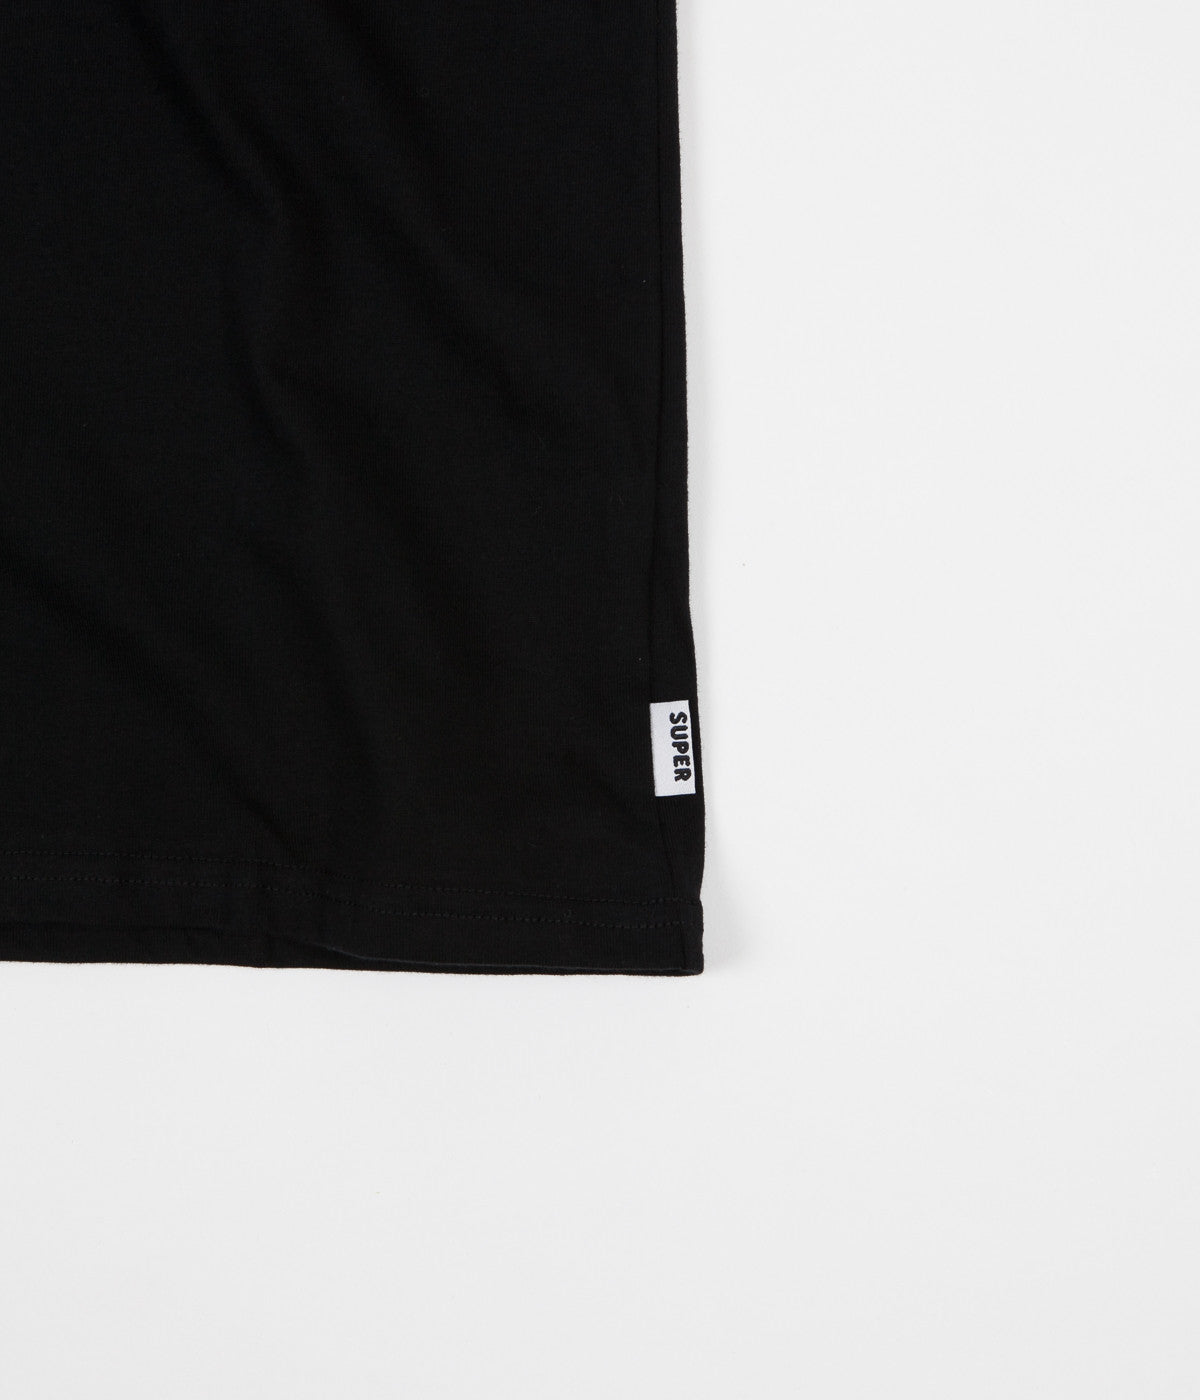 Colorsuper CSPR T-Shirt - Black / White